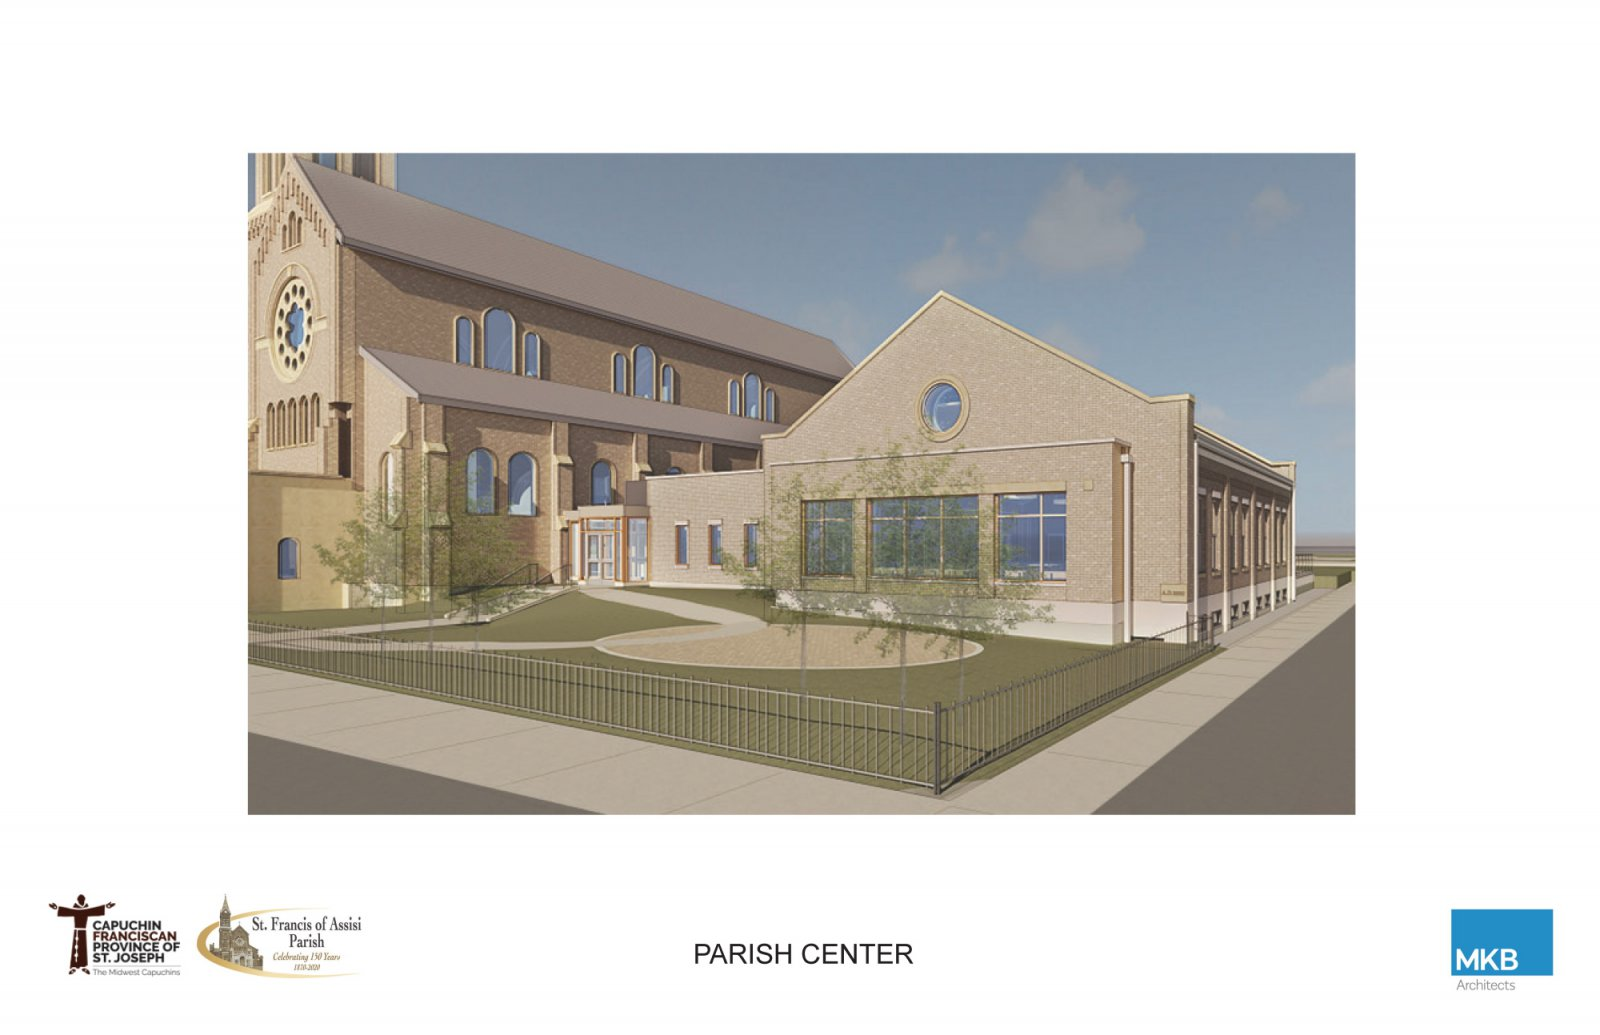 St. Francis of Assisi Parish Project